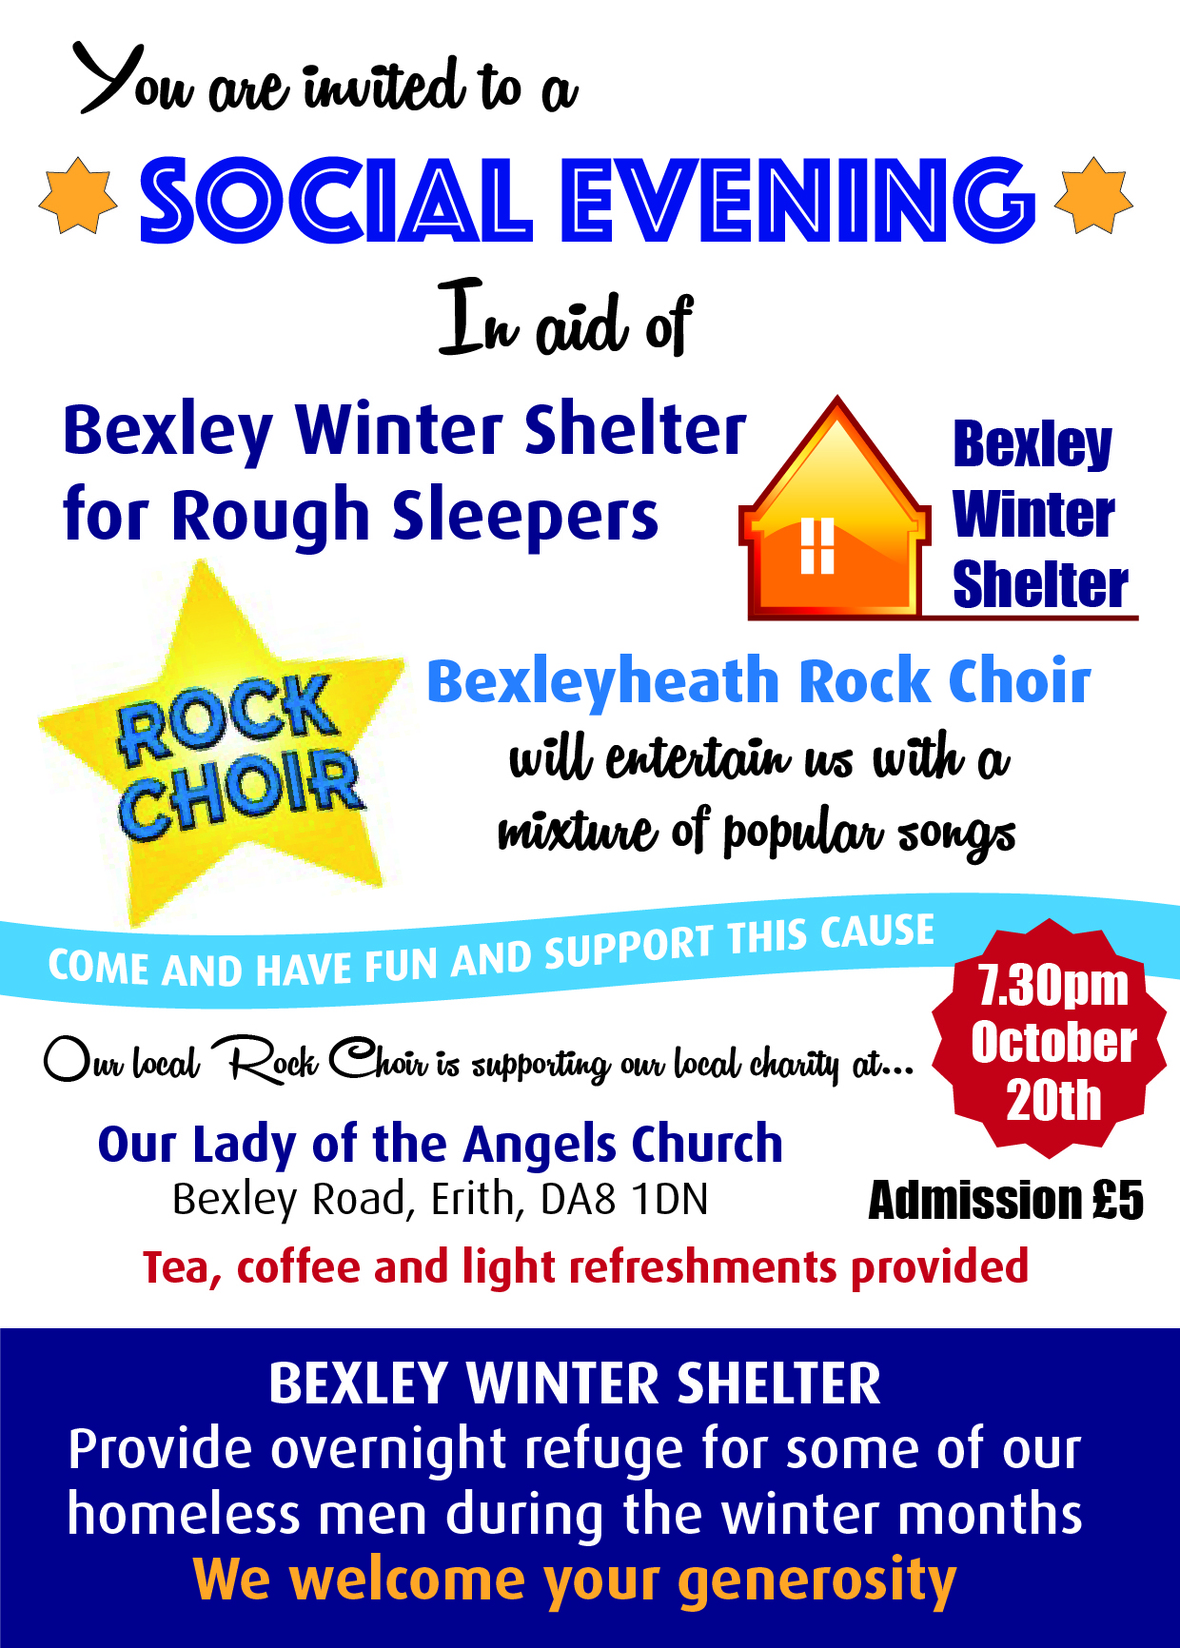 Bexley Winter Shelter A4